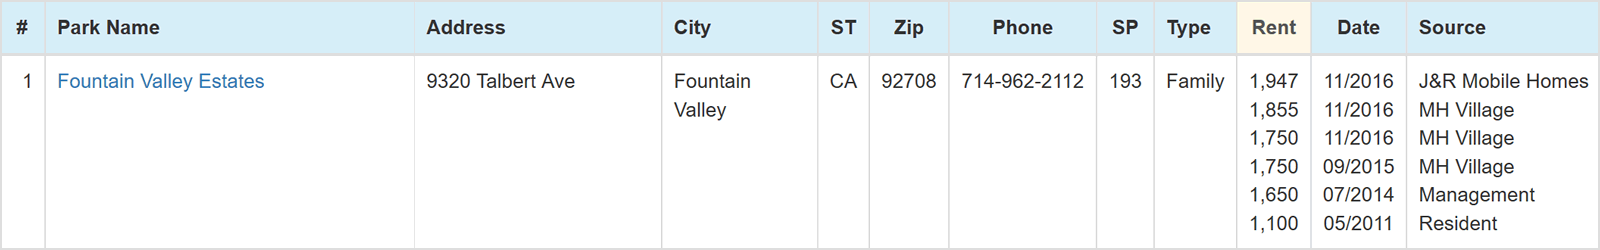 Fountain Valley Estates Space Rent History